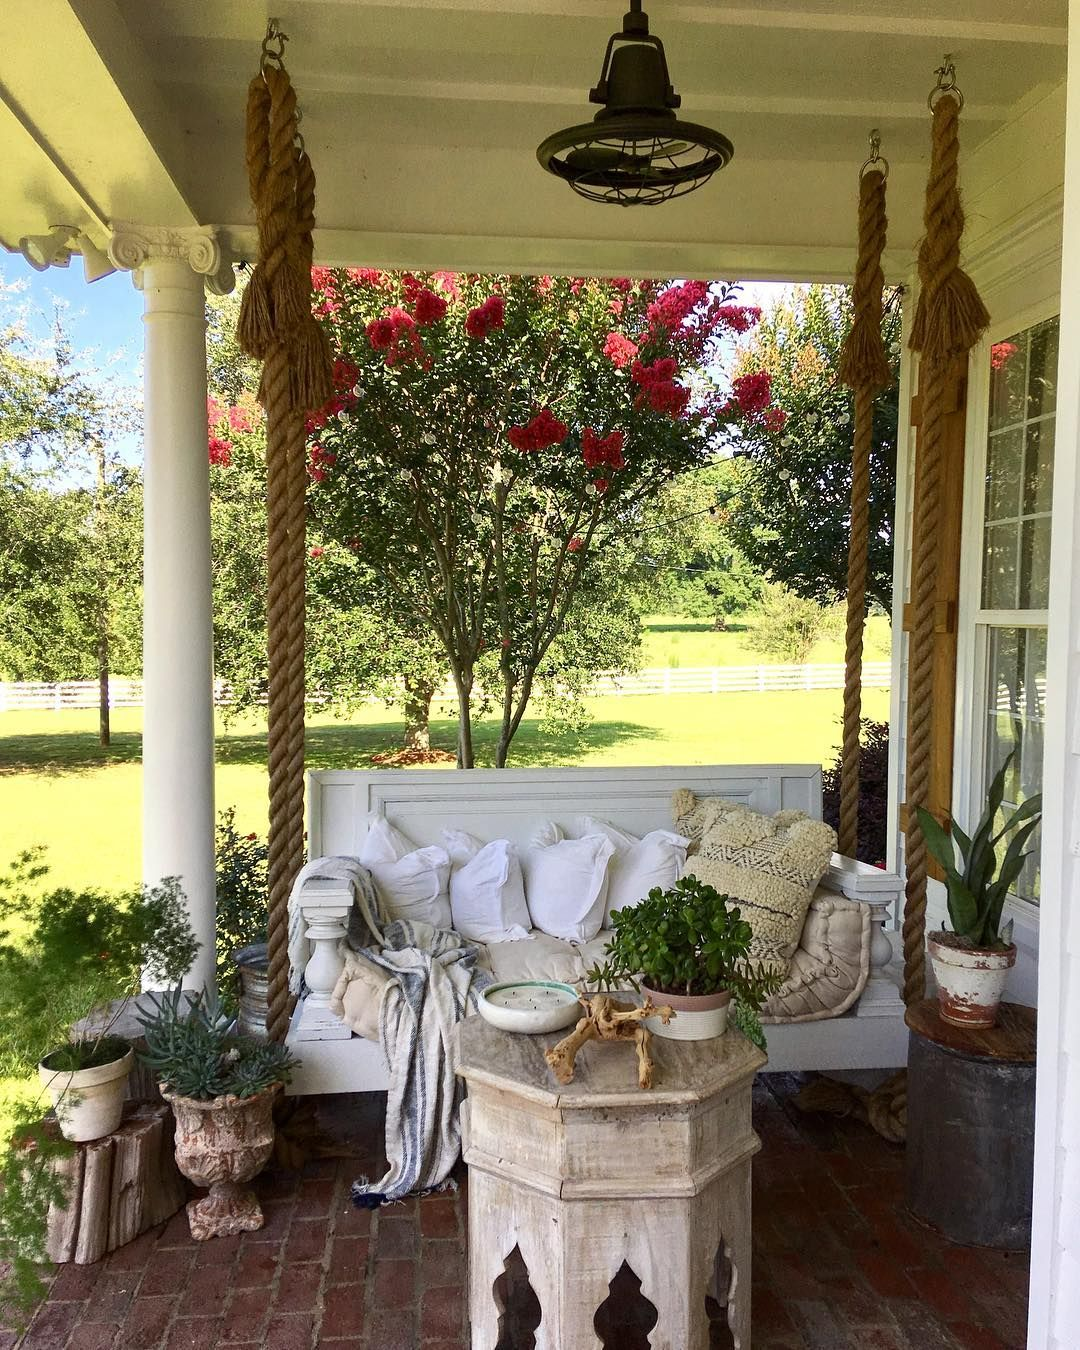 953 Likes, 41 Comments - Cindi (@cindimc.ivoryhome) on ... on Outdoor Living Contractors Near Me id=73245